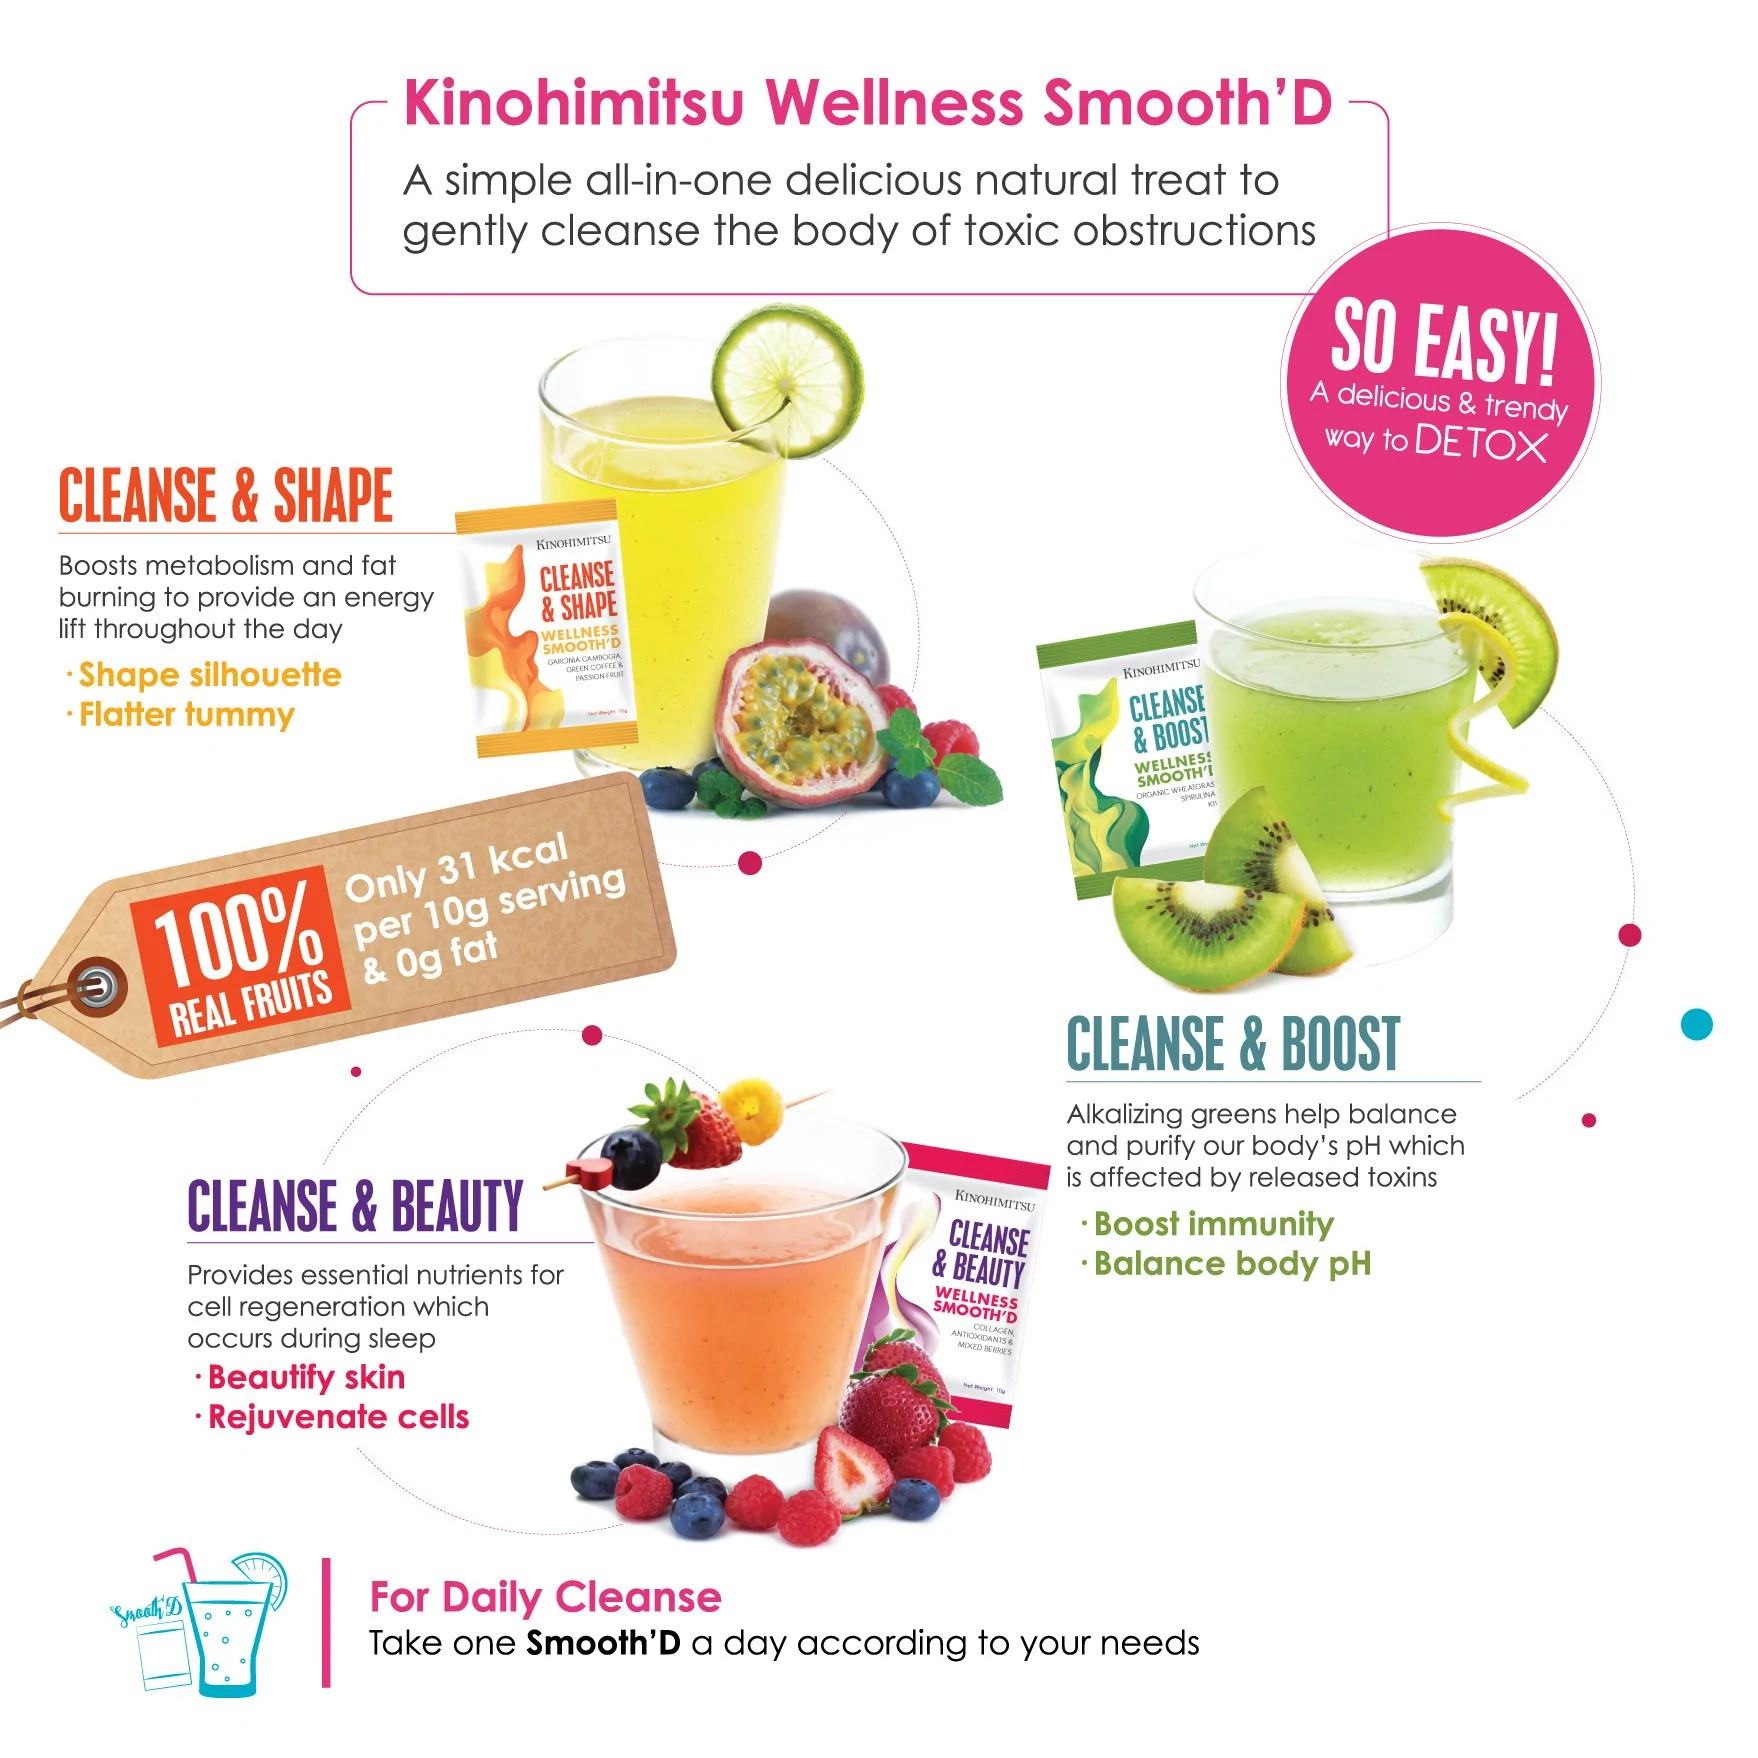 Kinohimitsu Wellness Smooth'D